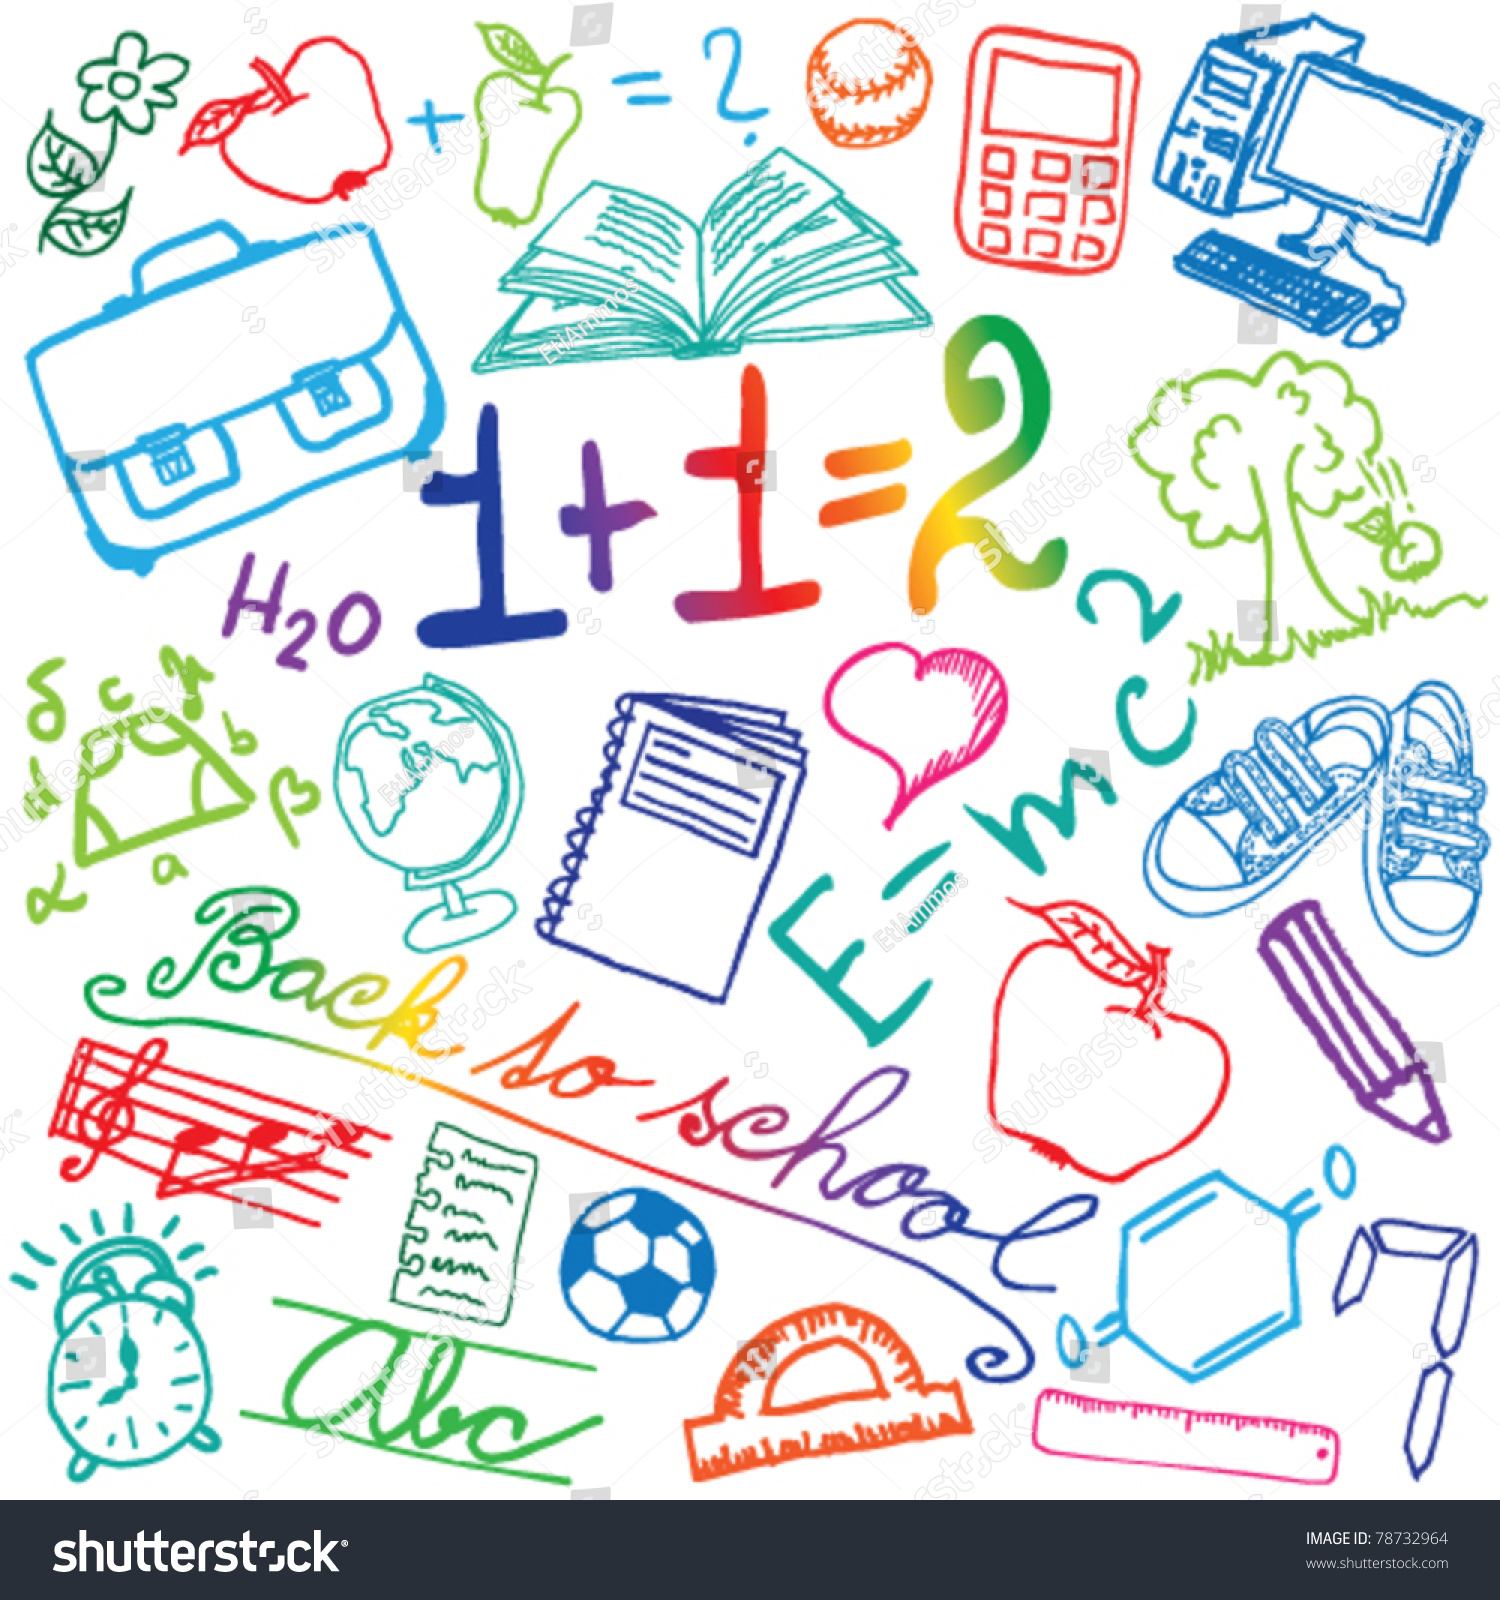 Set colored school symbols stock vector 78732964 shutterstock set of colored school symbols buycottarizona Image collections